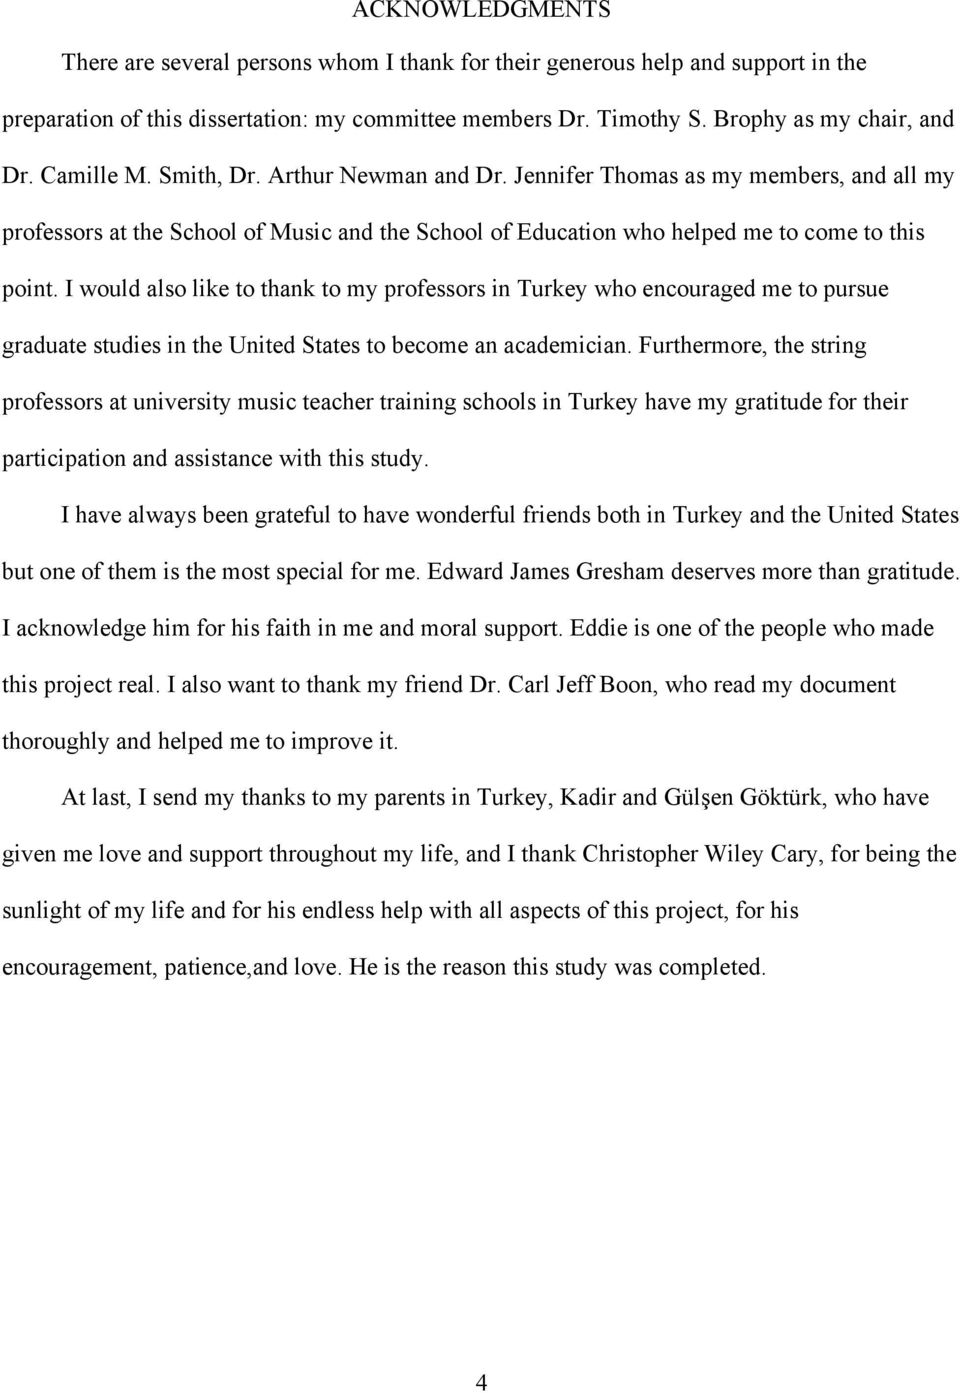 I would also like to thank to my professors in Turkey who encouraged me to pursue graduate studies in the United States to become an academician.